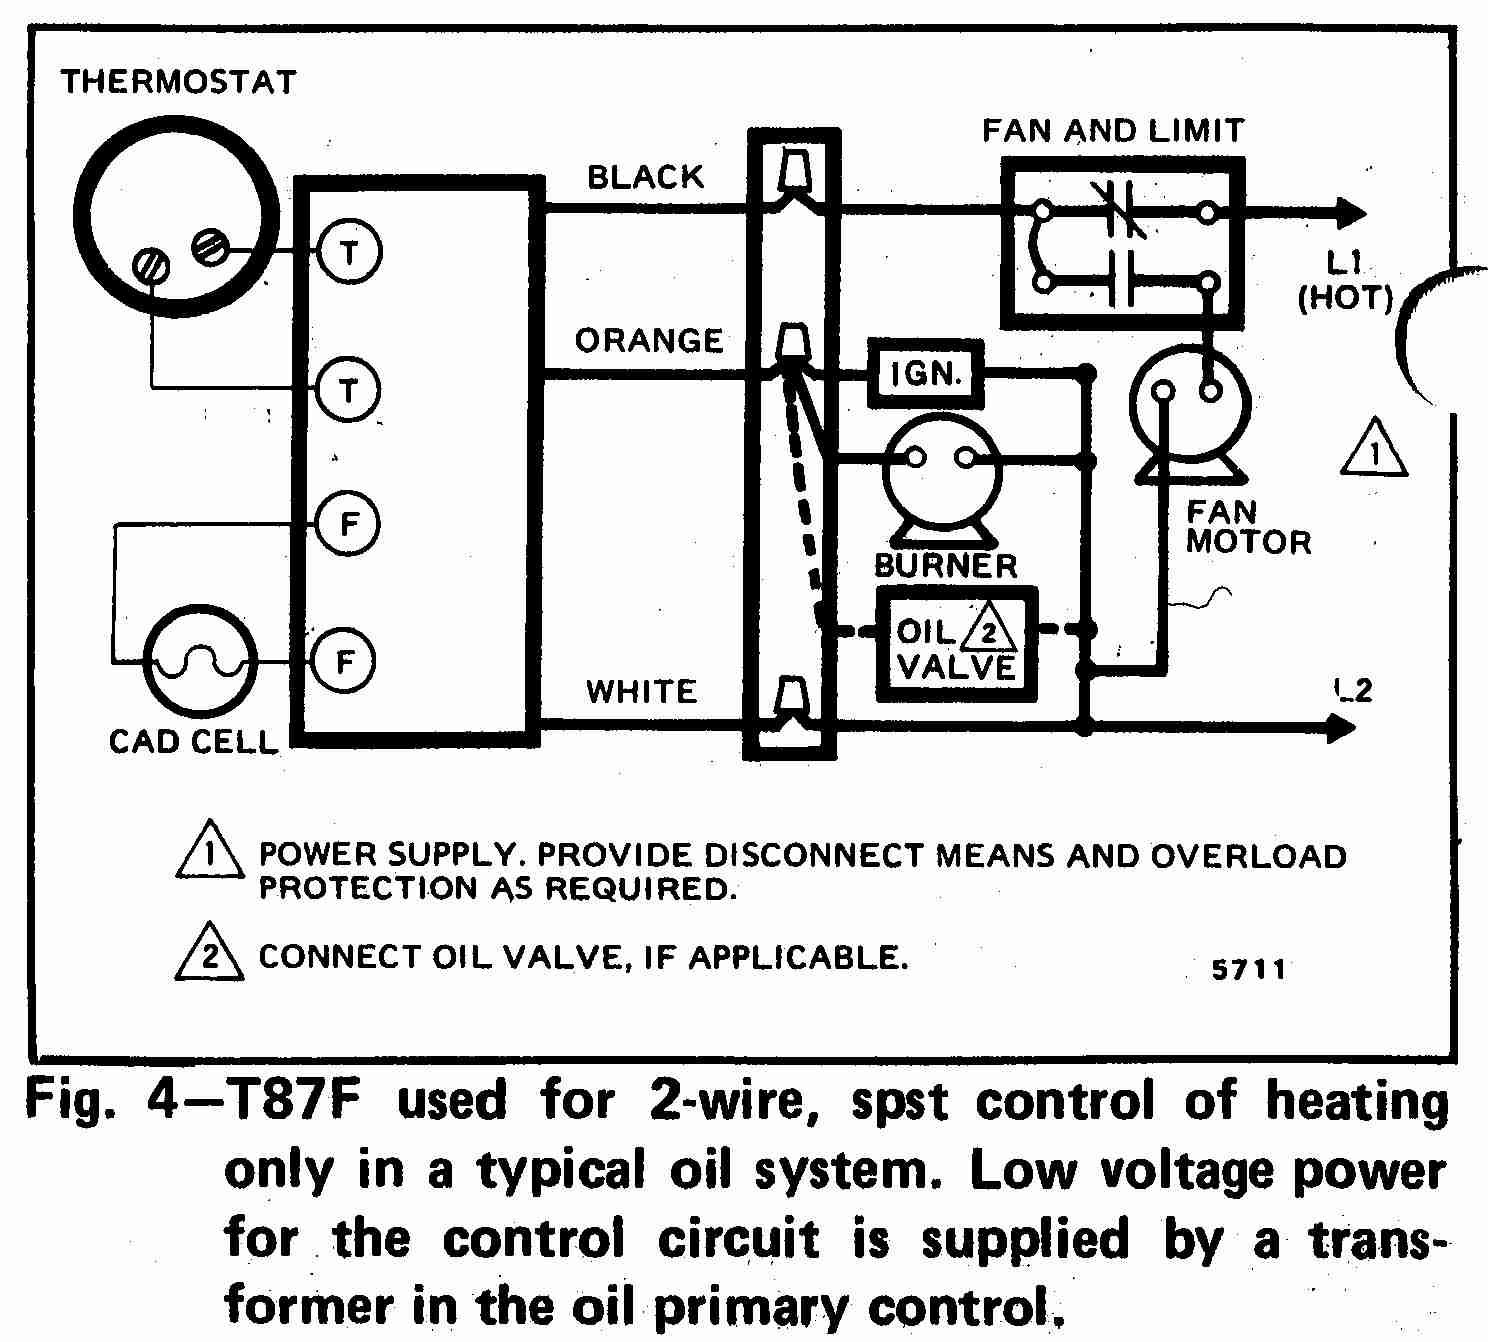 coleman mach thermostat wiring diagram schematics and wiring thermostat digital 12v 7 wire for coleman h heat pumps